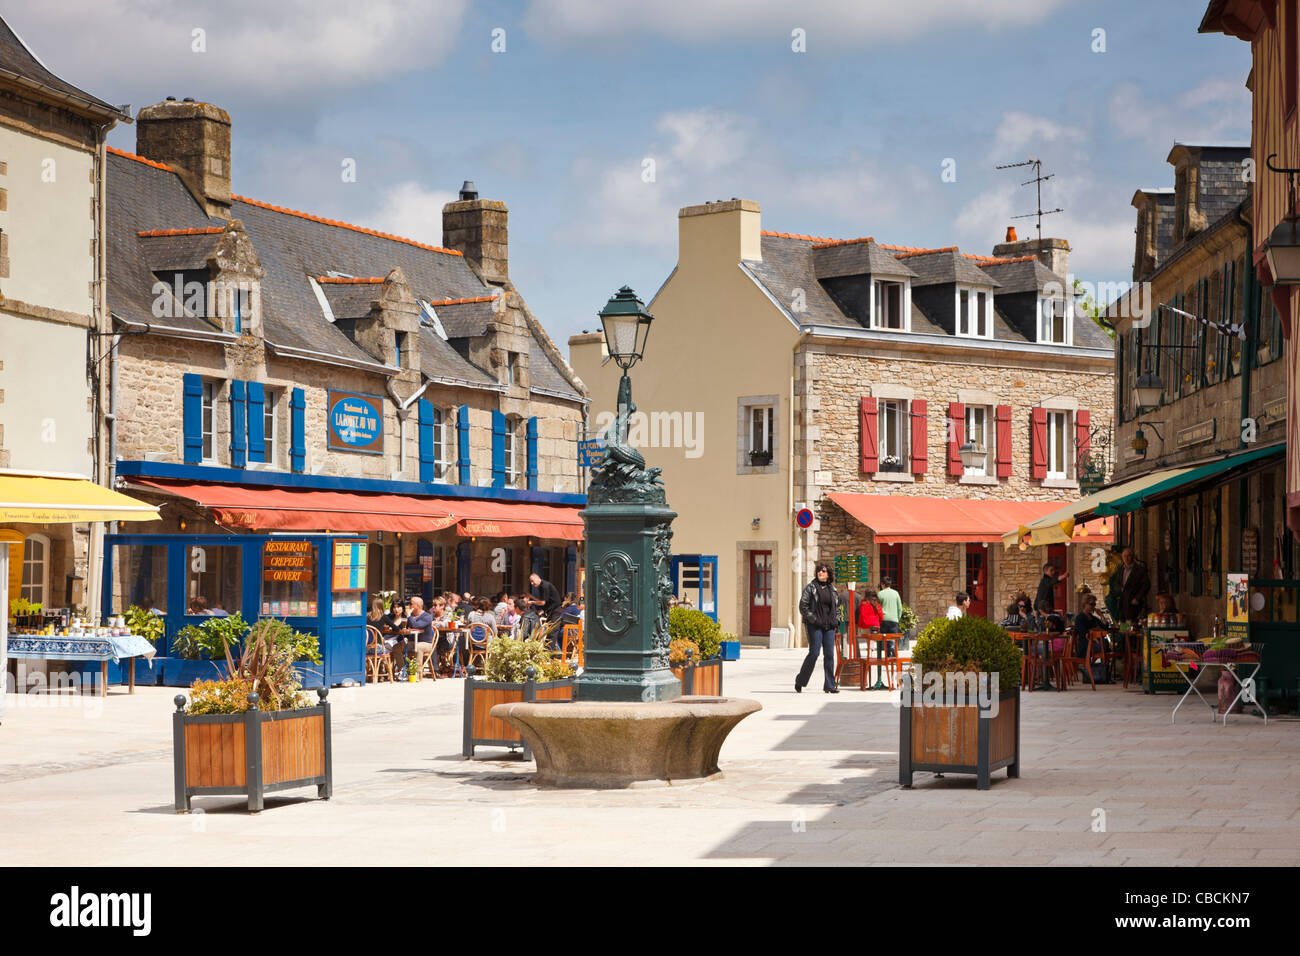 Brittany - The town square, Concarneau old town, Finistere, Brittany, France Stock Photo